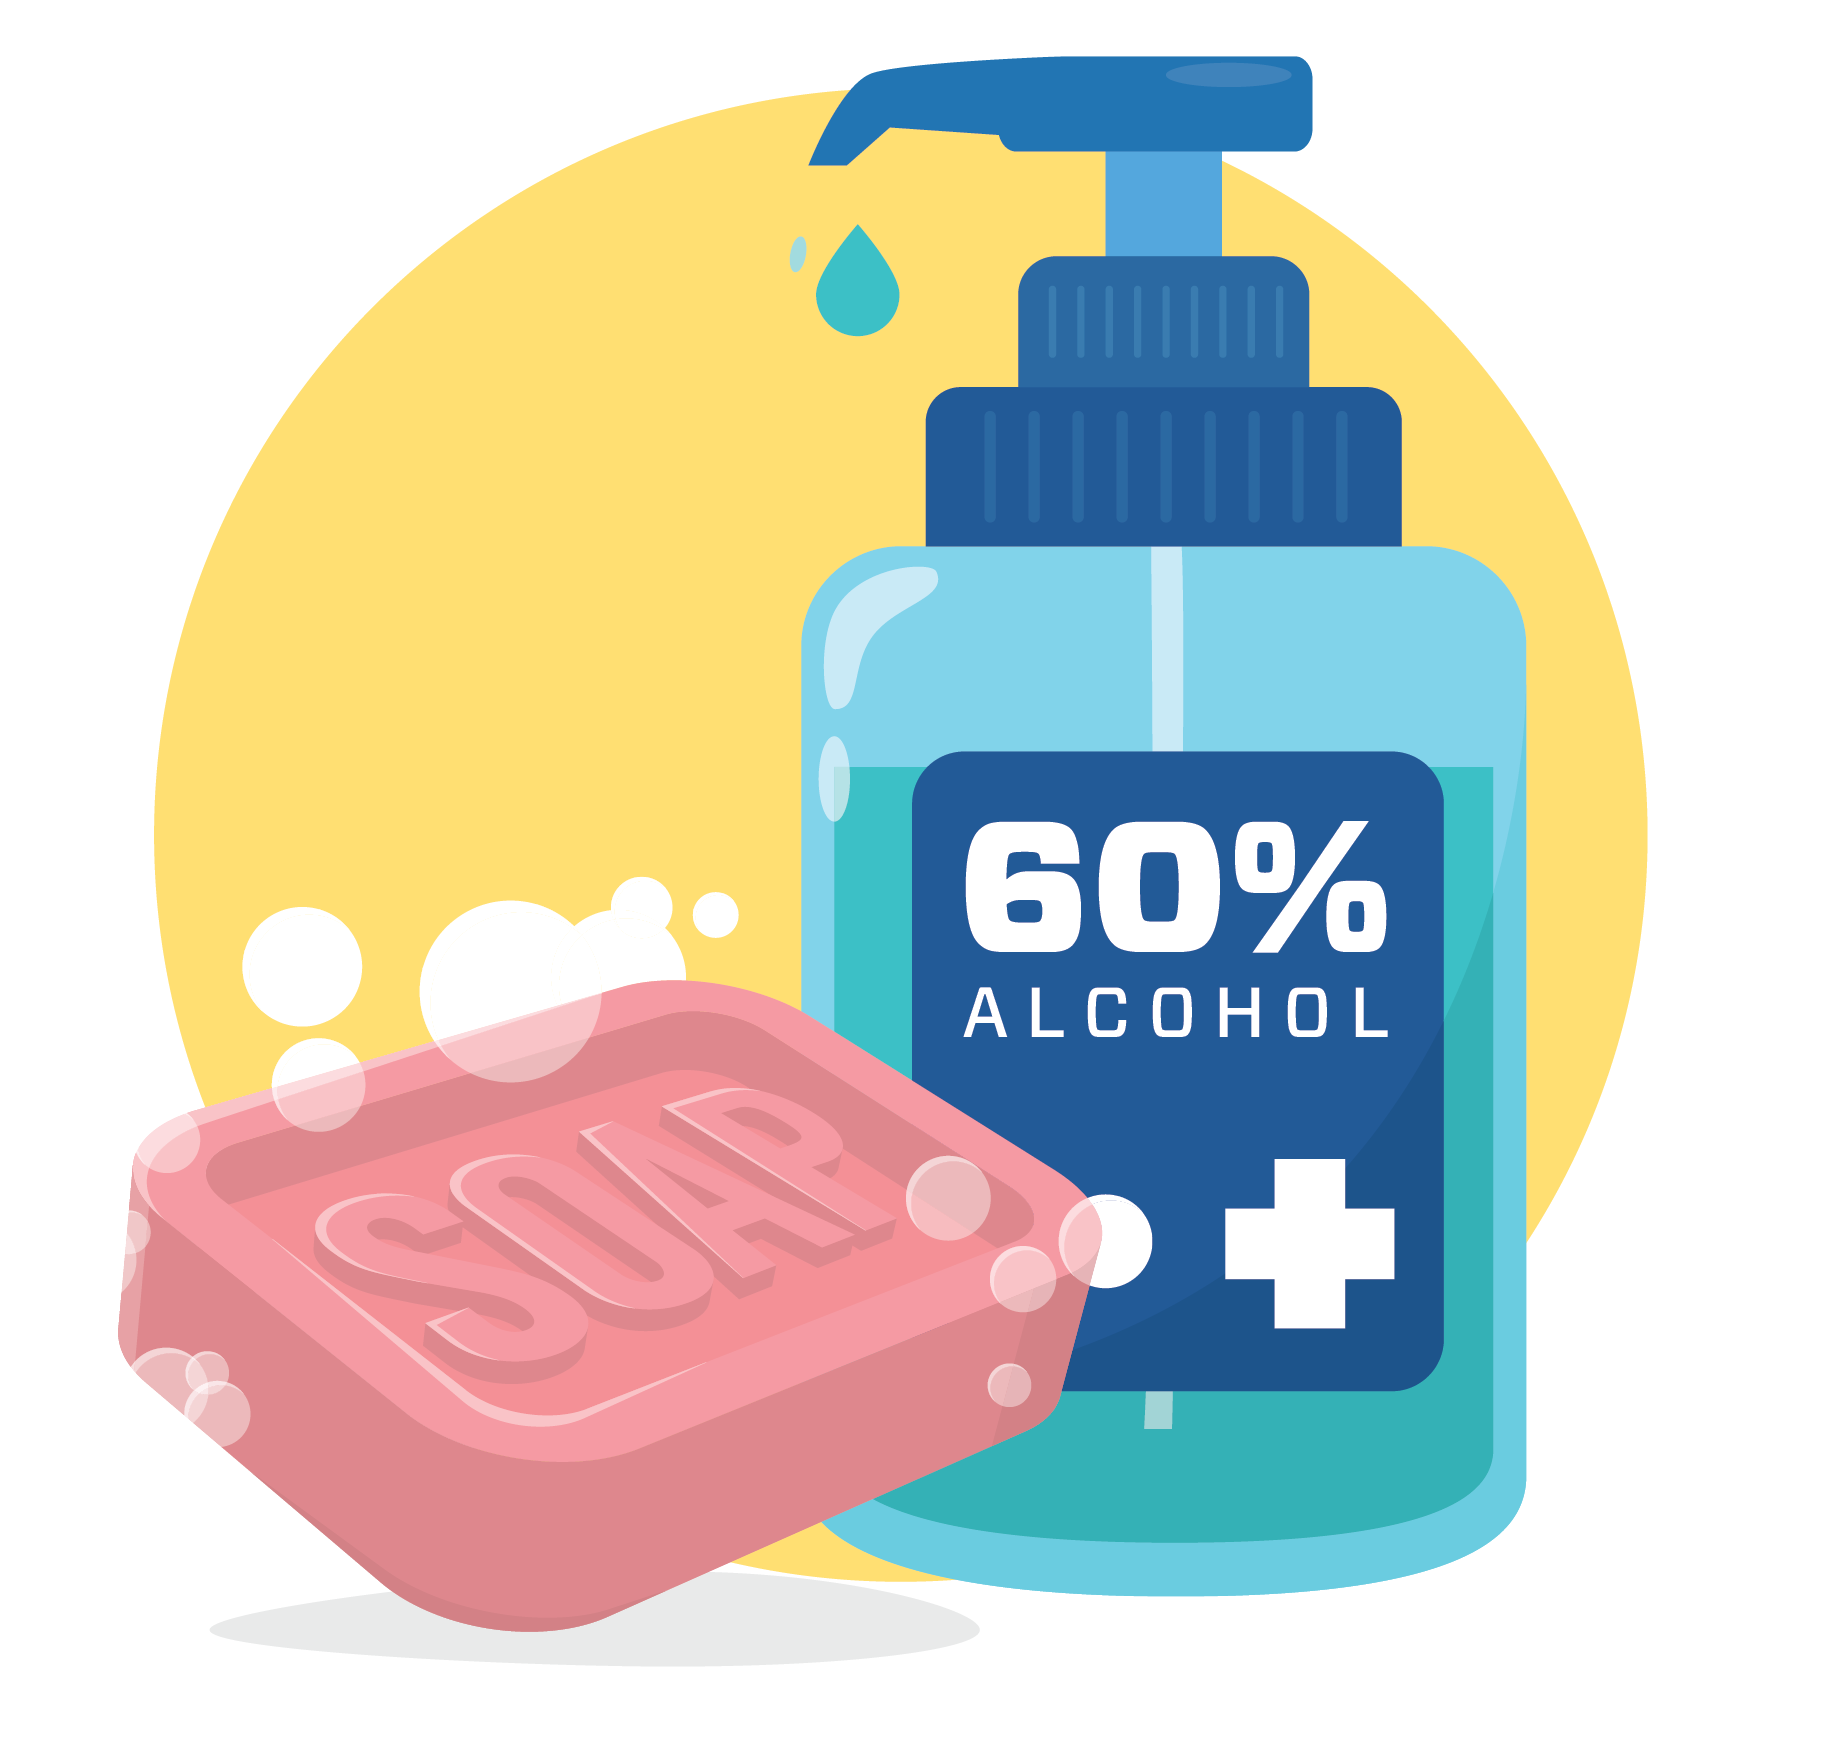 Use sanitizer with at least 60% alcohol